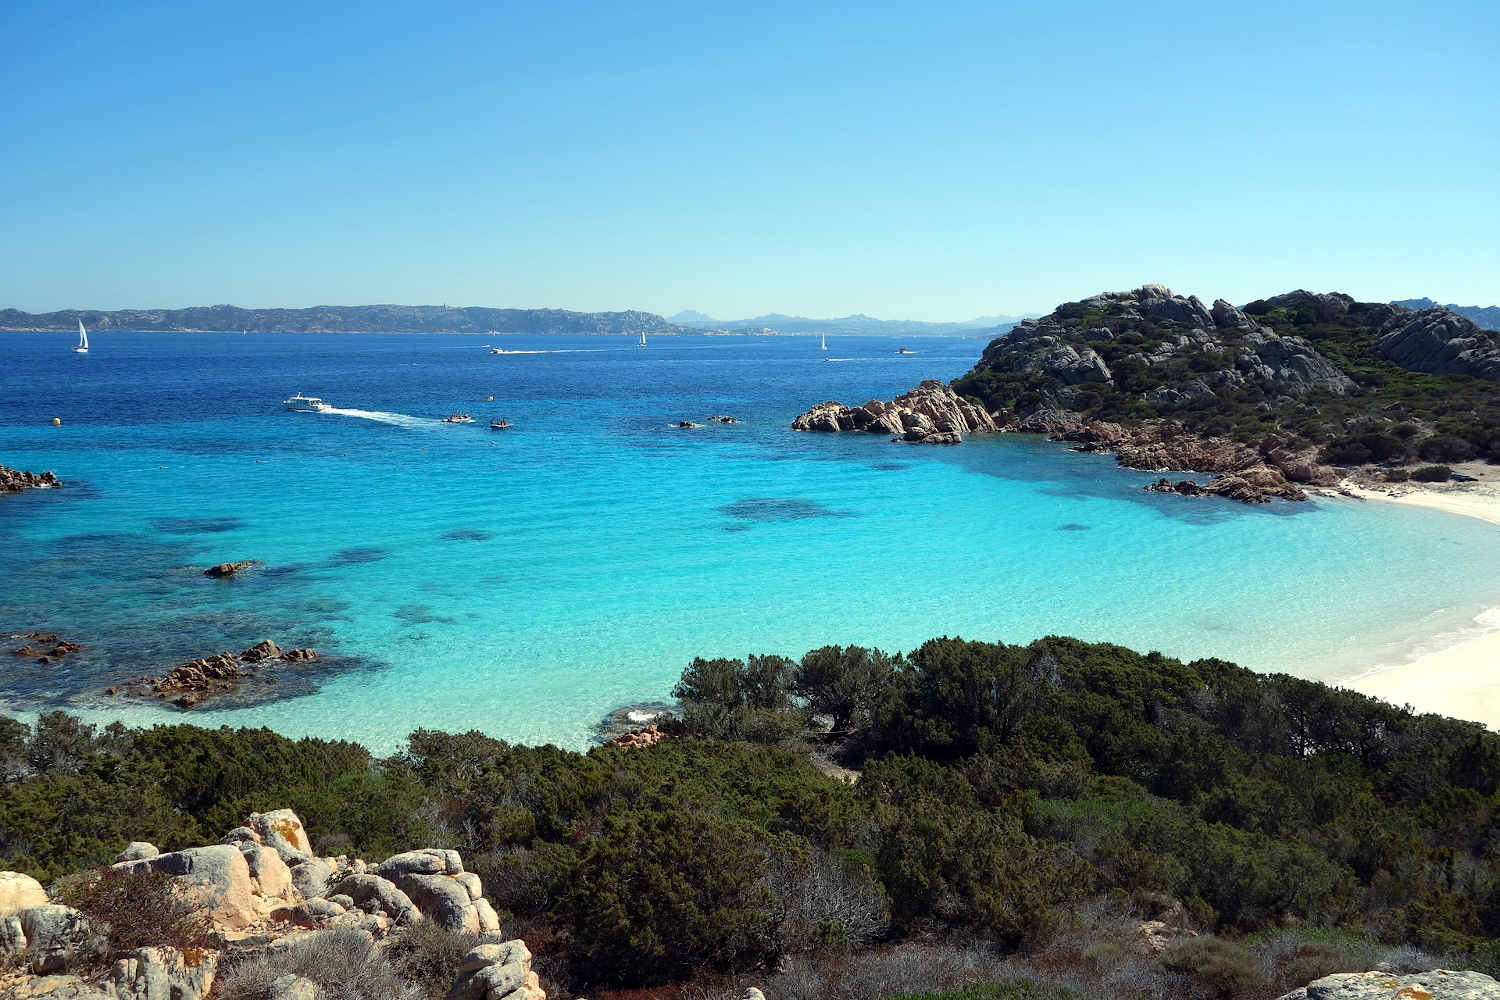 Ibiza beach, the best tested beaches of Ibiza